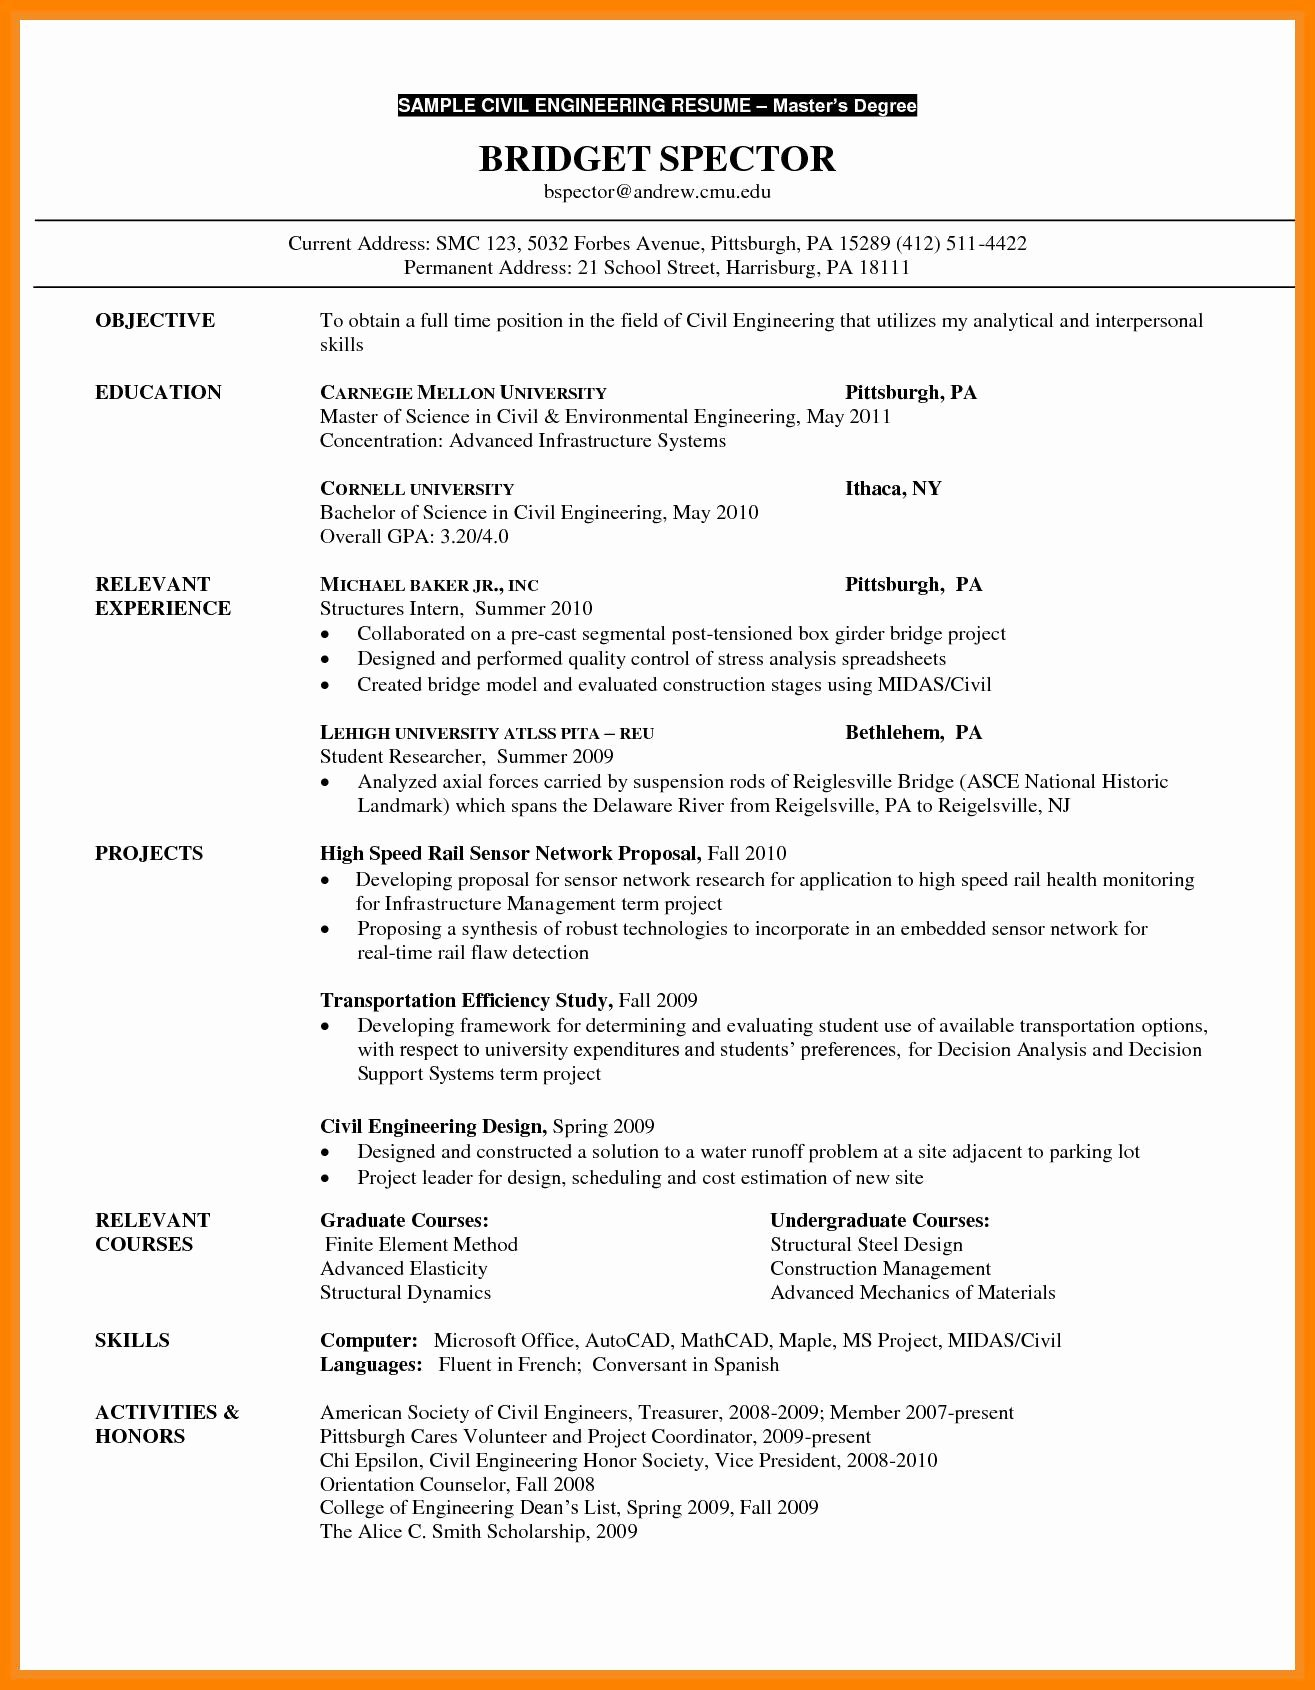 Grad School Resume Template Inspirational Elegant Resume Graduate School Sample Eviosoft